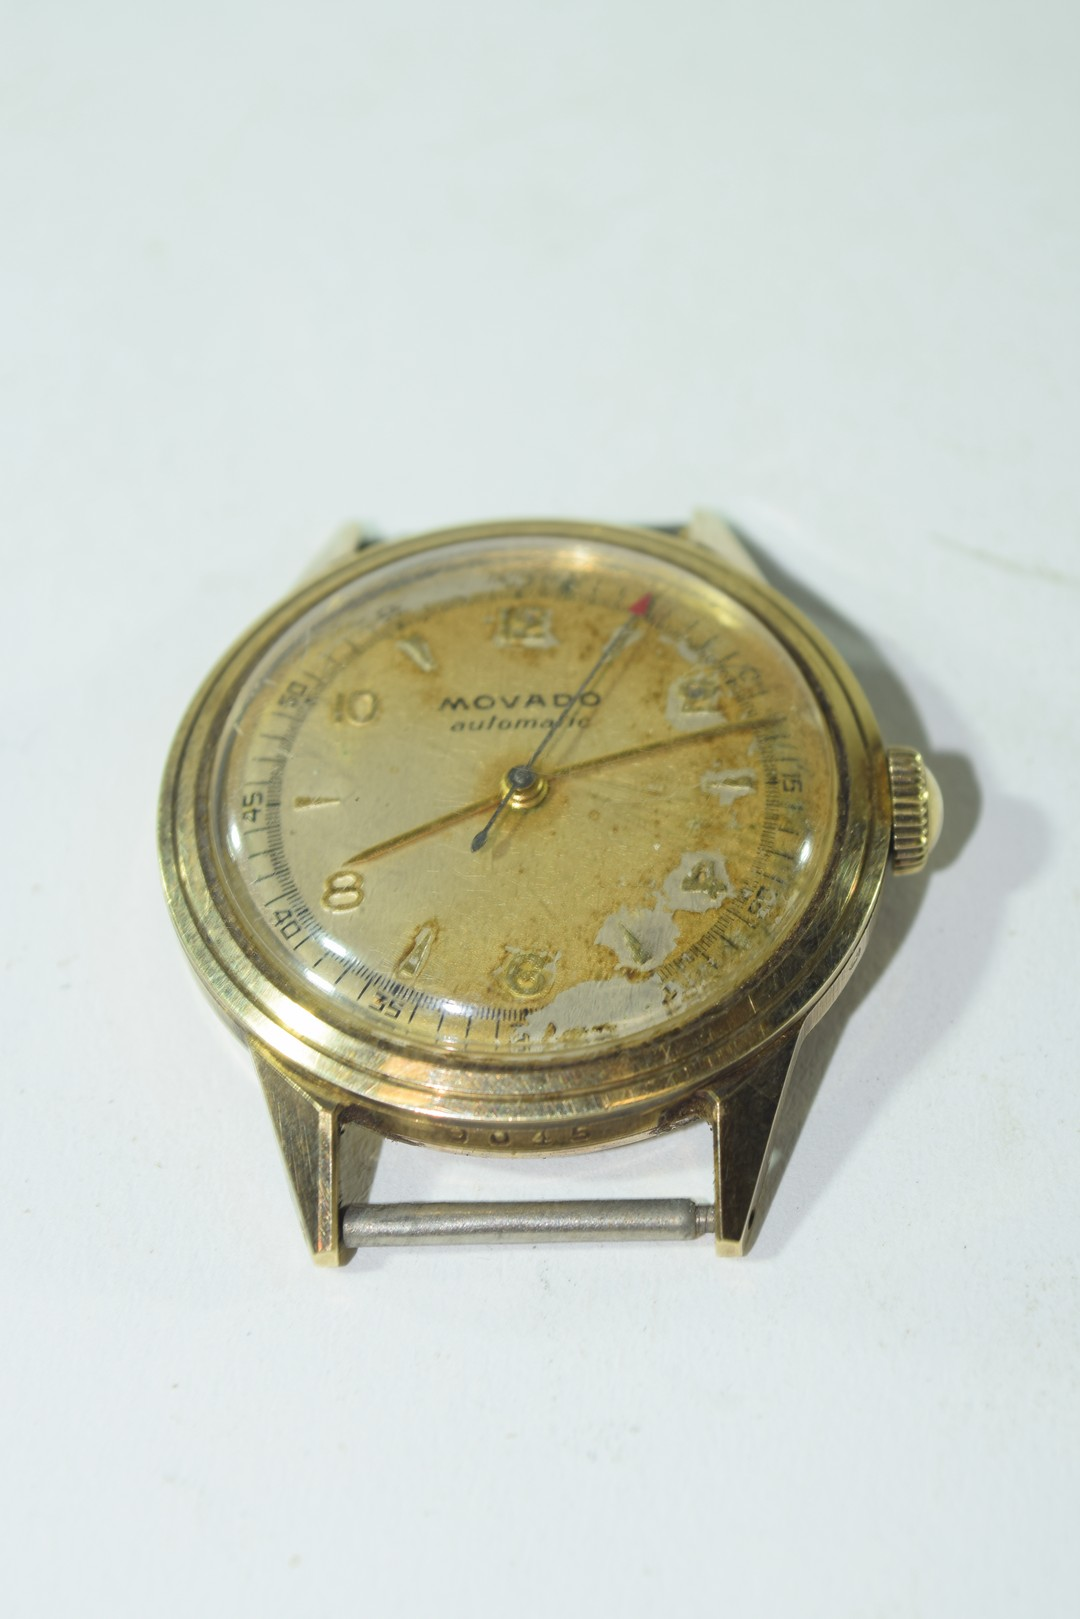 Movado gents yellow metal automatic wrist watch - Image 2 of 4